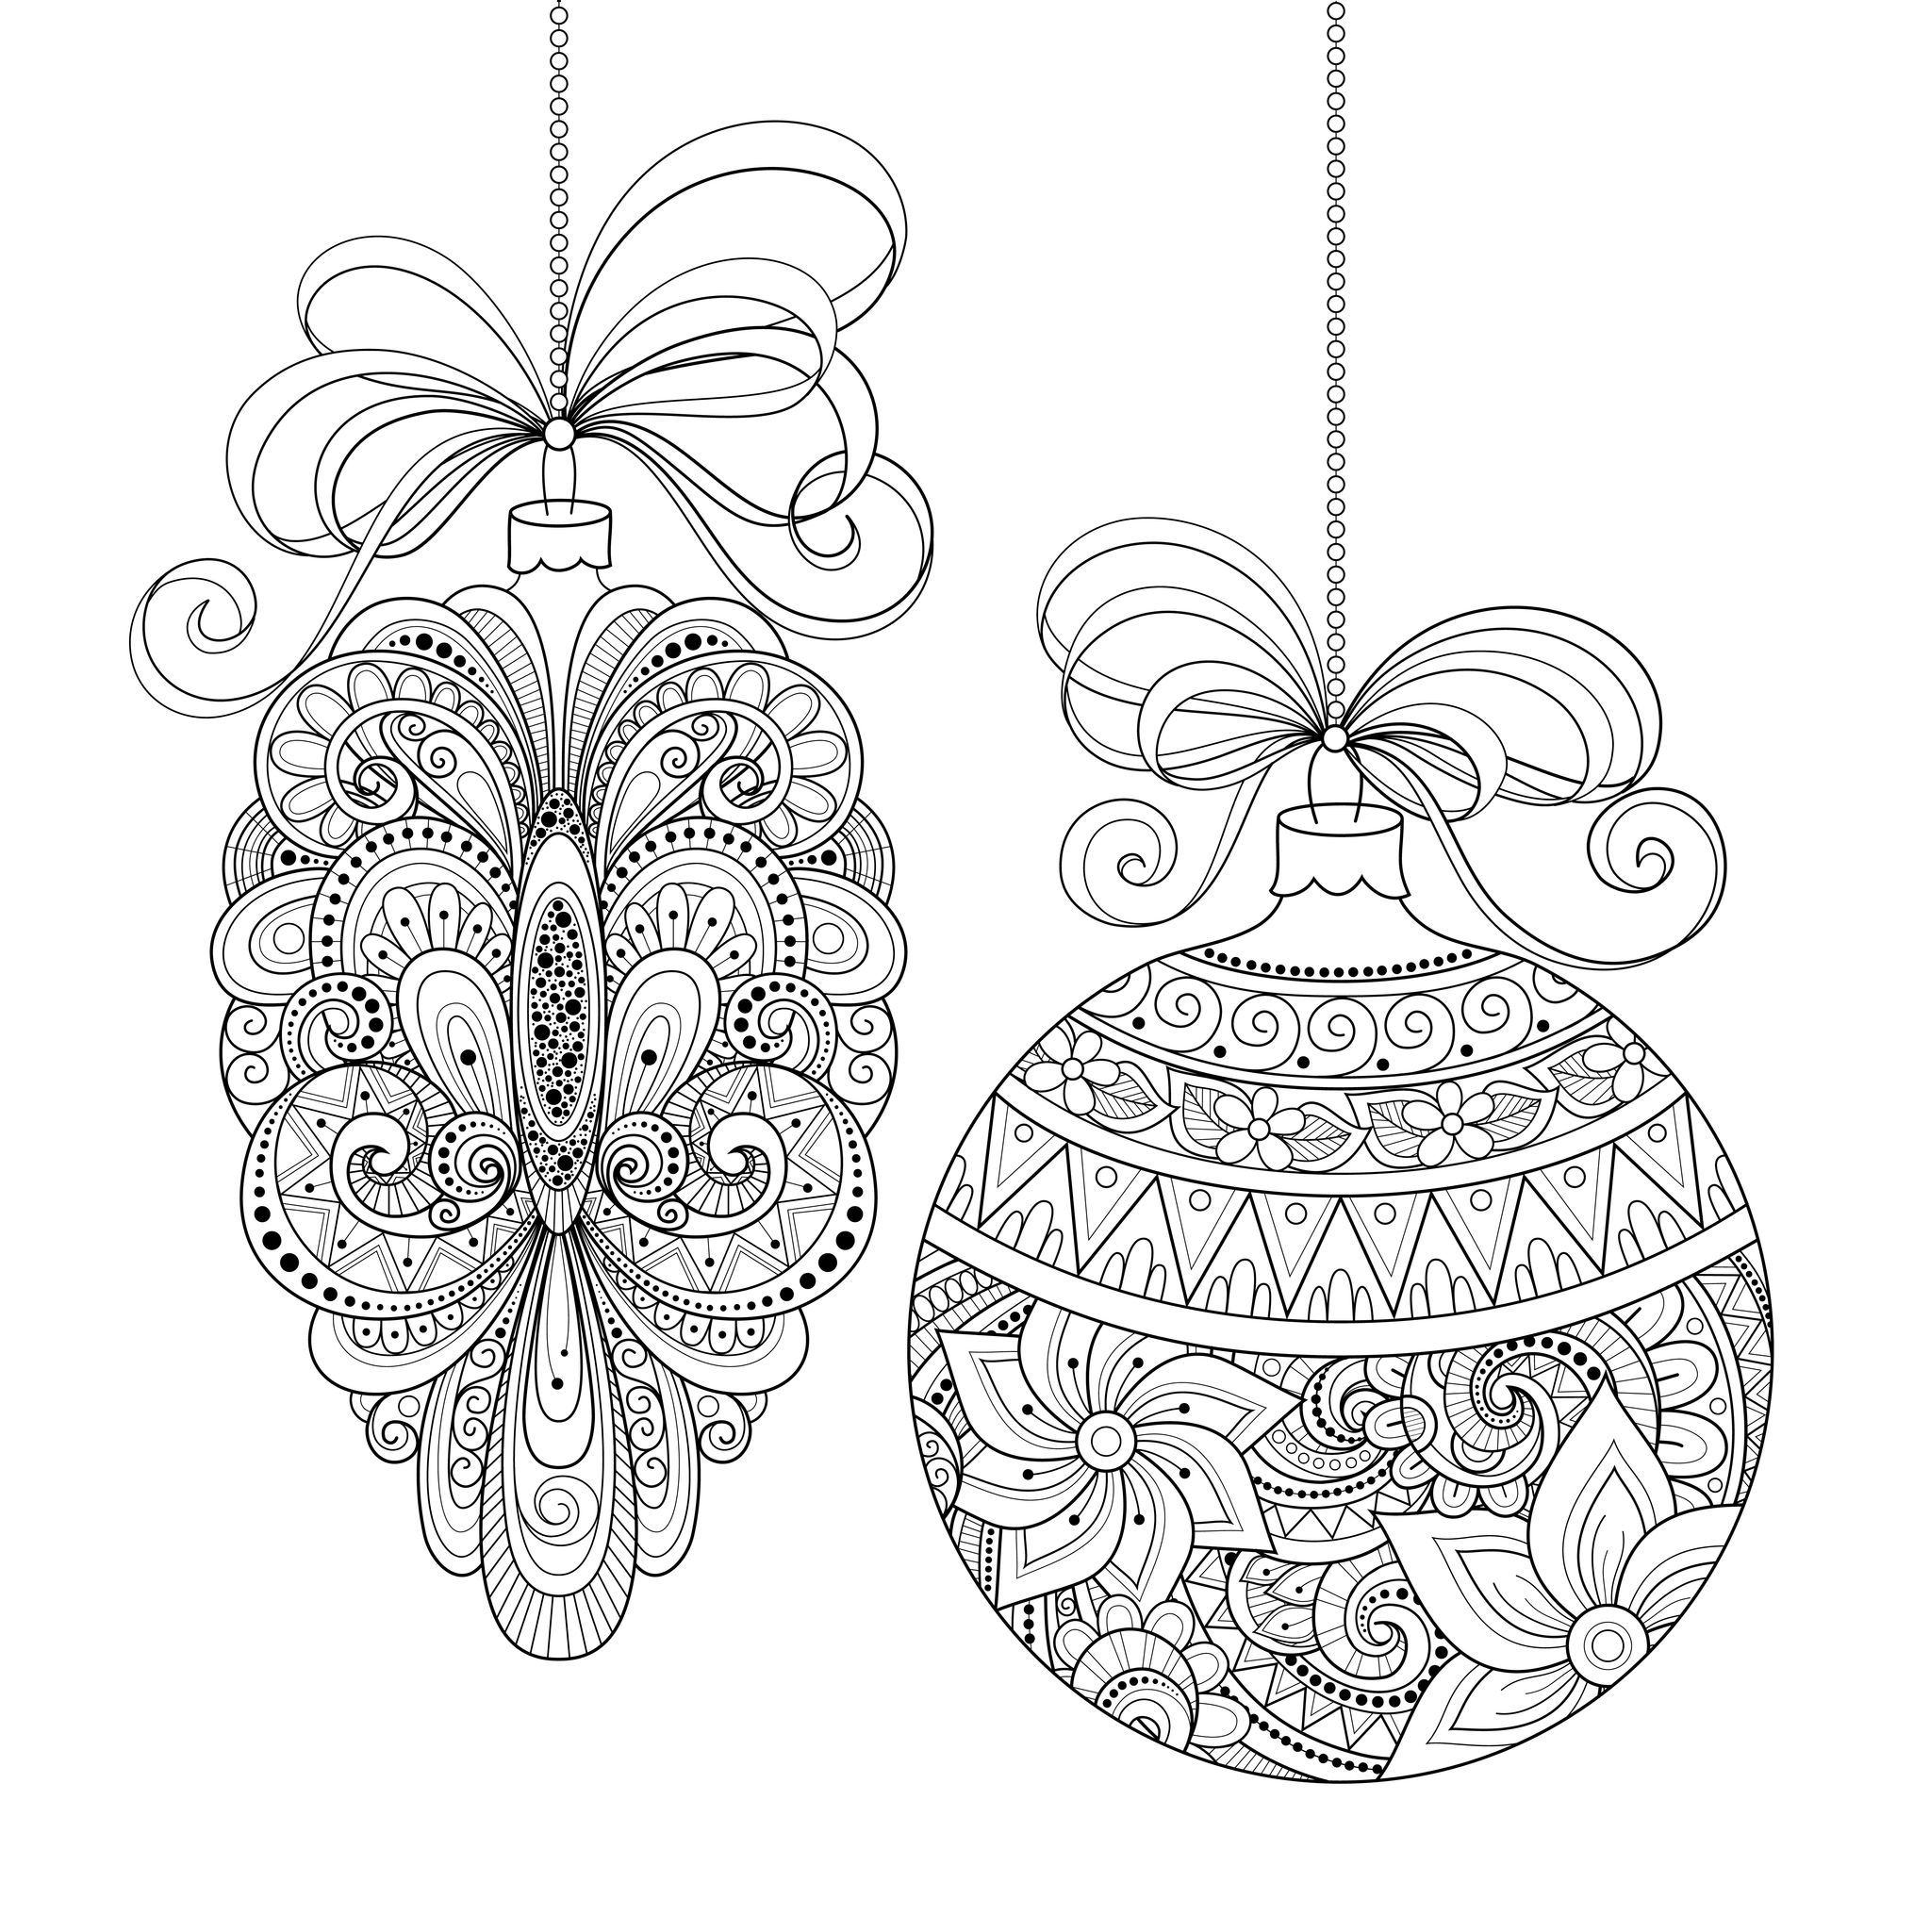 Christmas - Coloring pages for adults | JustColor